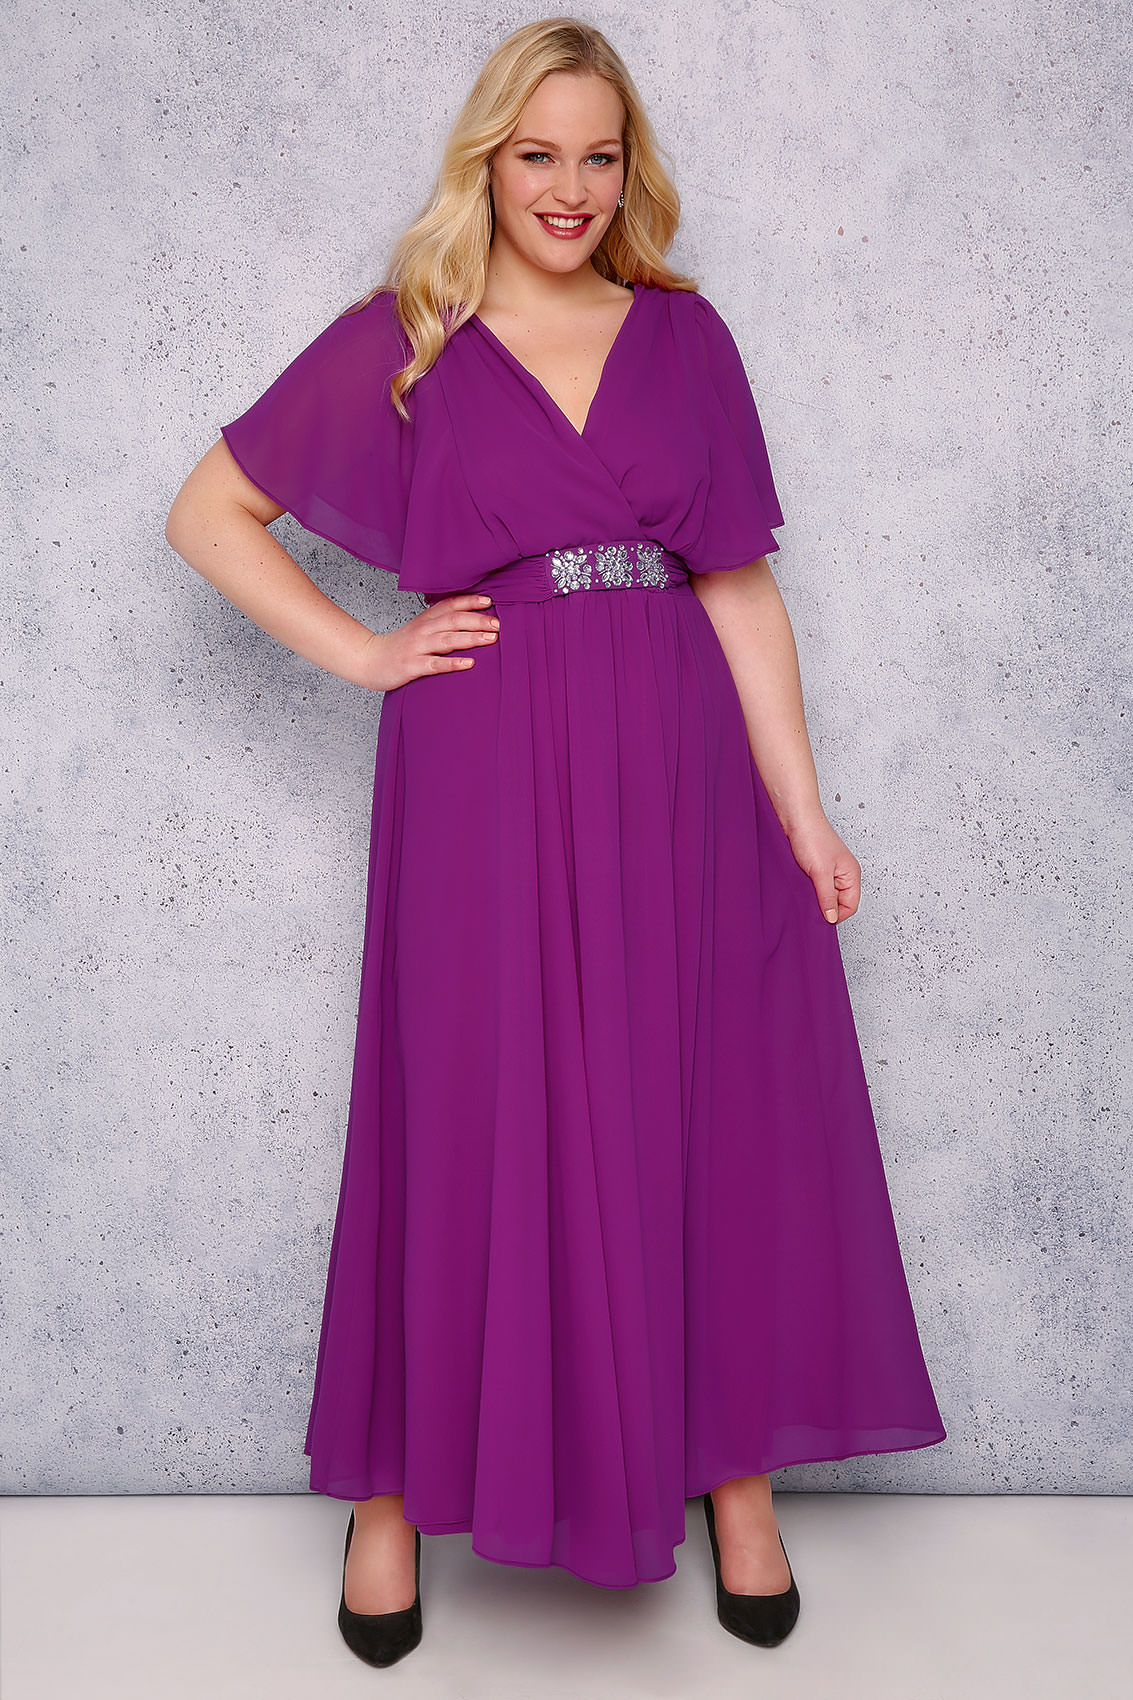 SCARLETT & JO Purple Chiffon Maxi Dress With Embellished Waist Tie ...